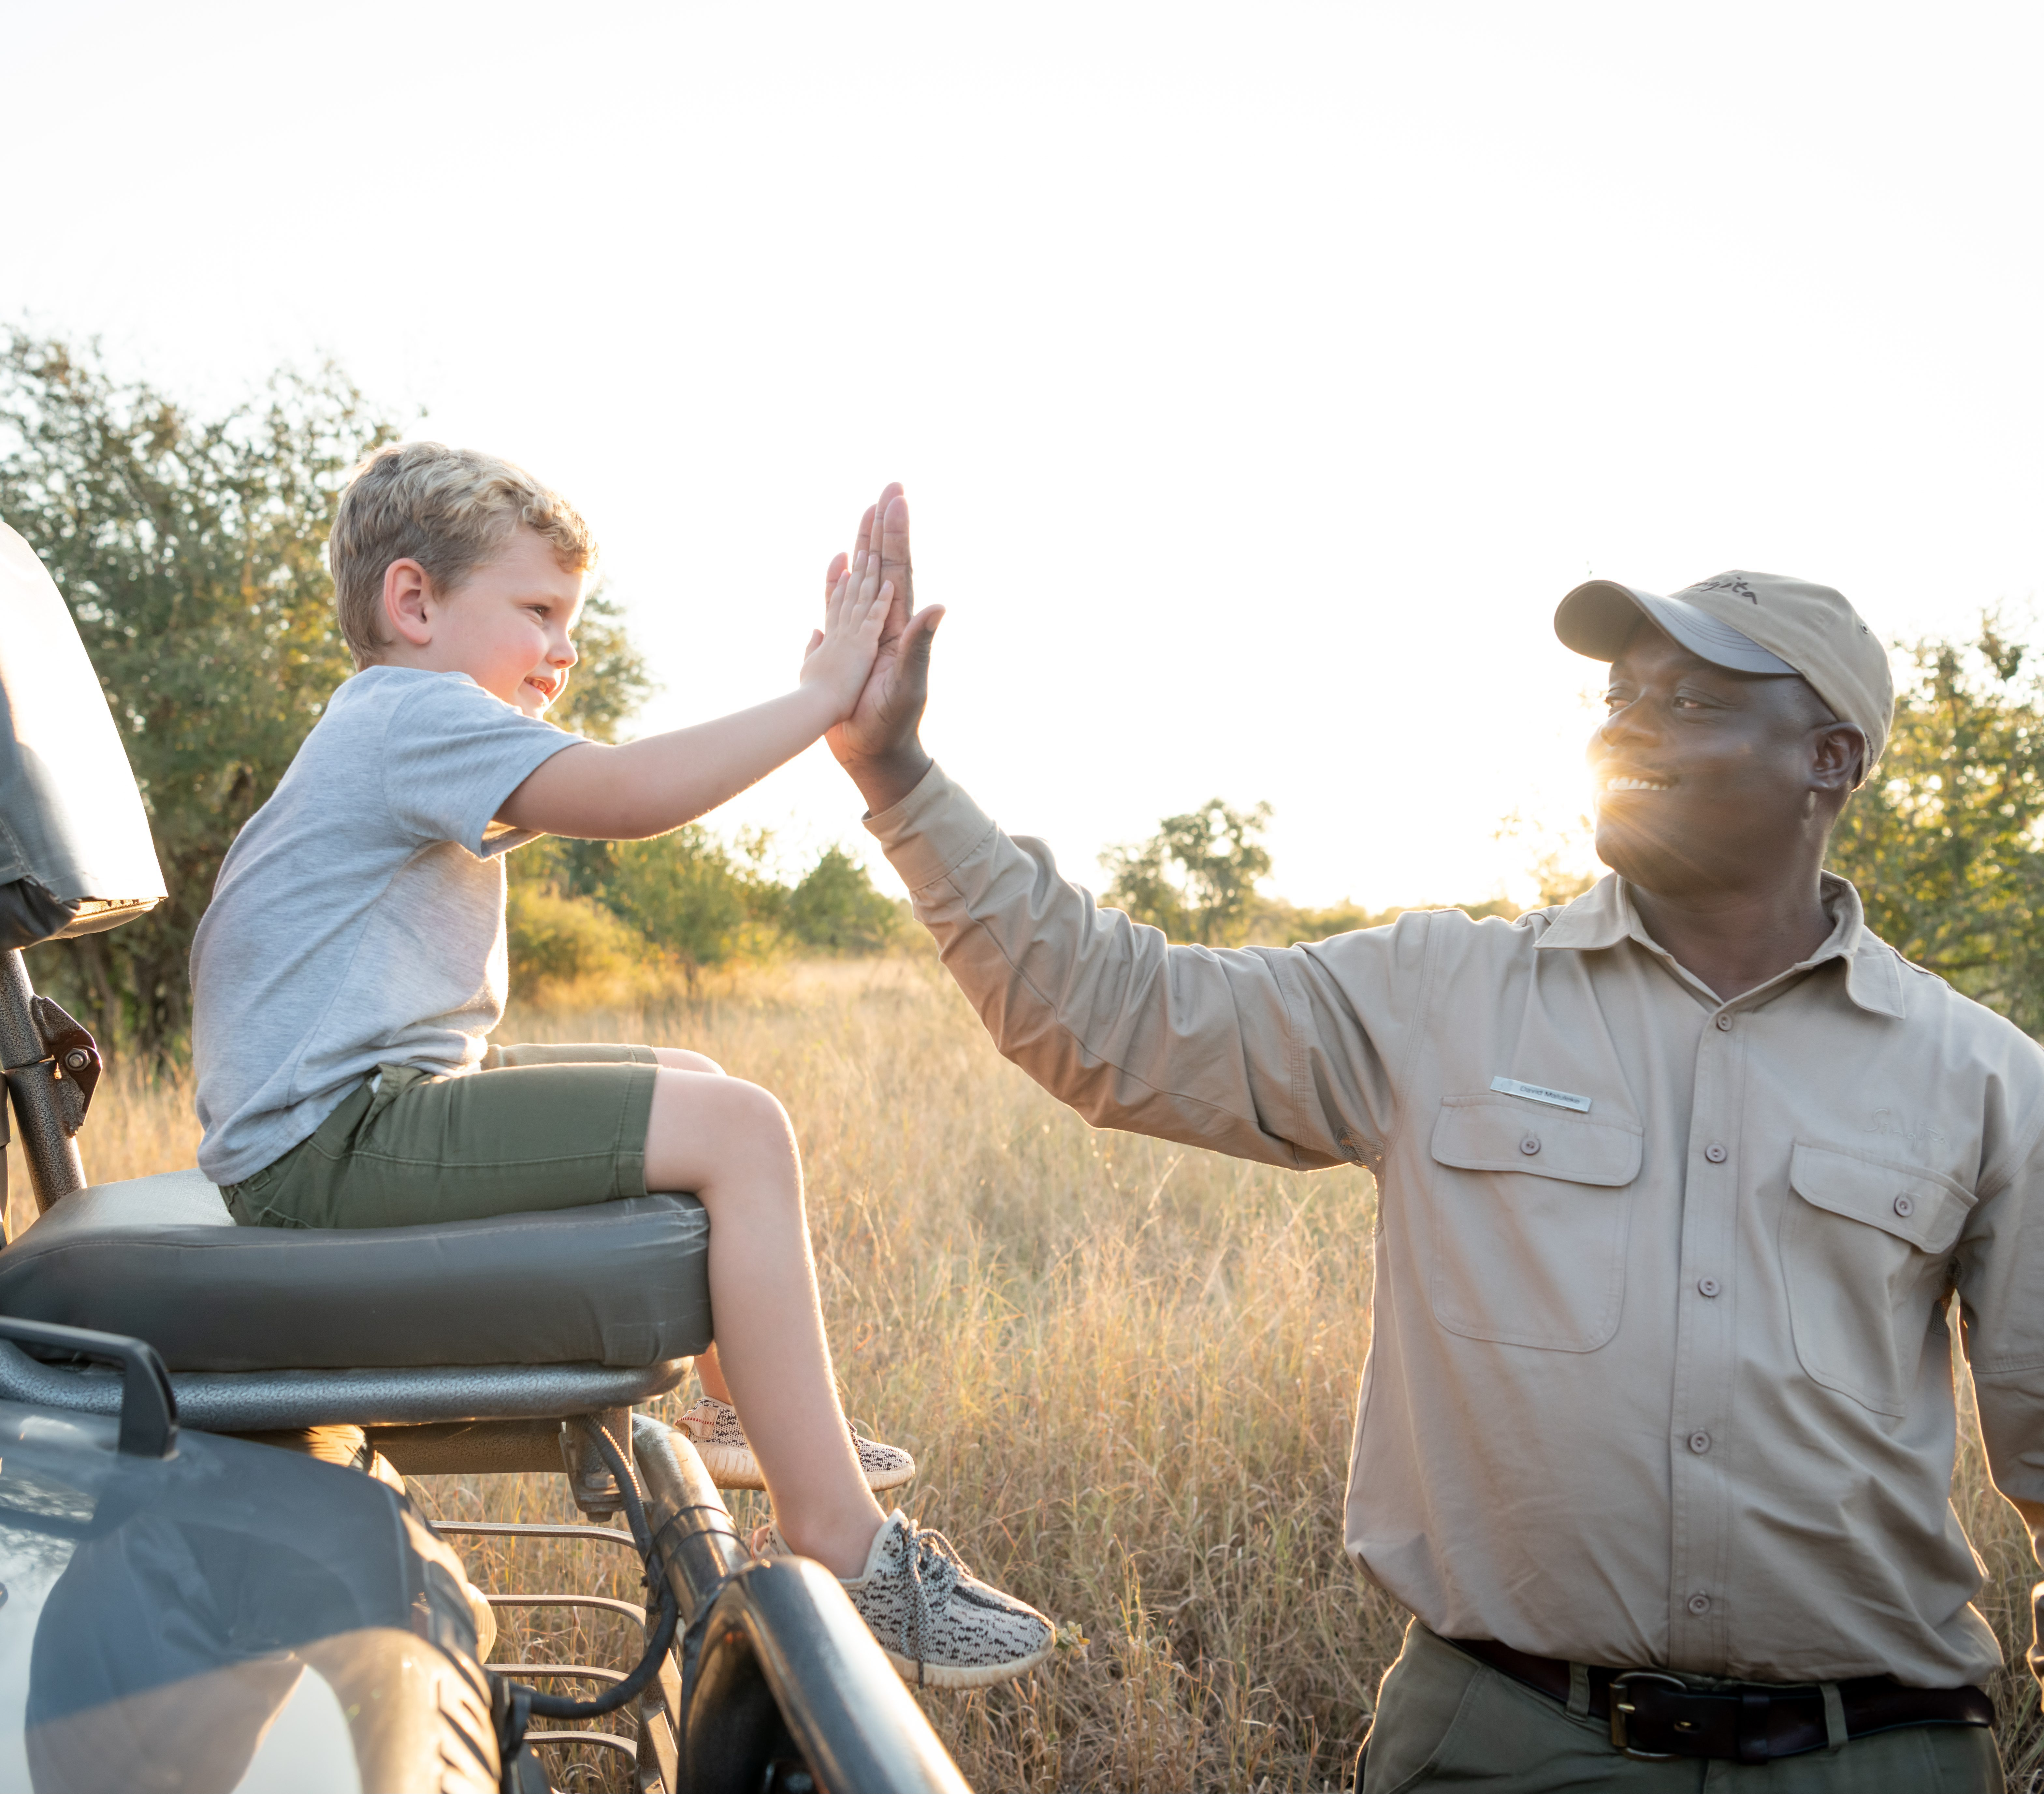 Is Safari Appropriate For Kids?